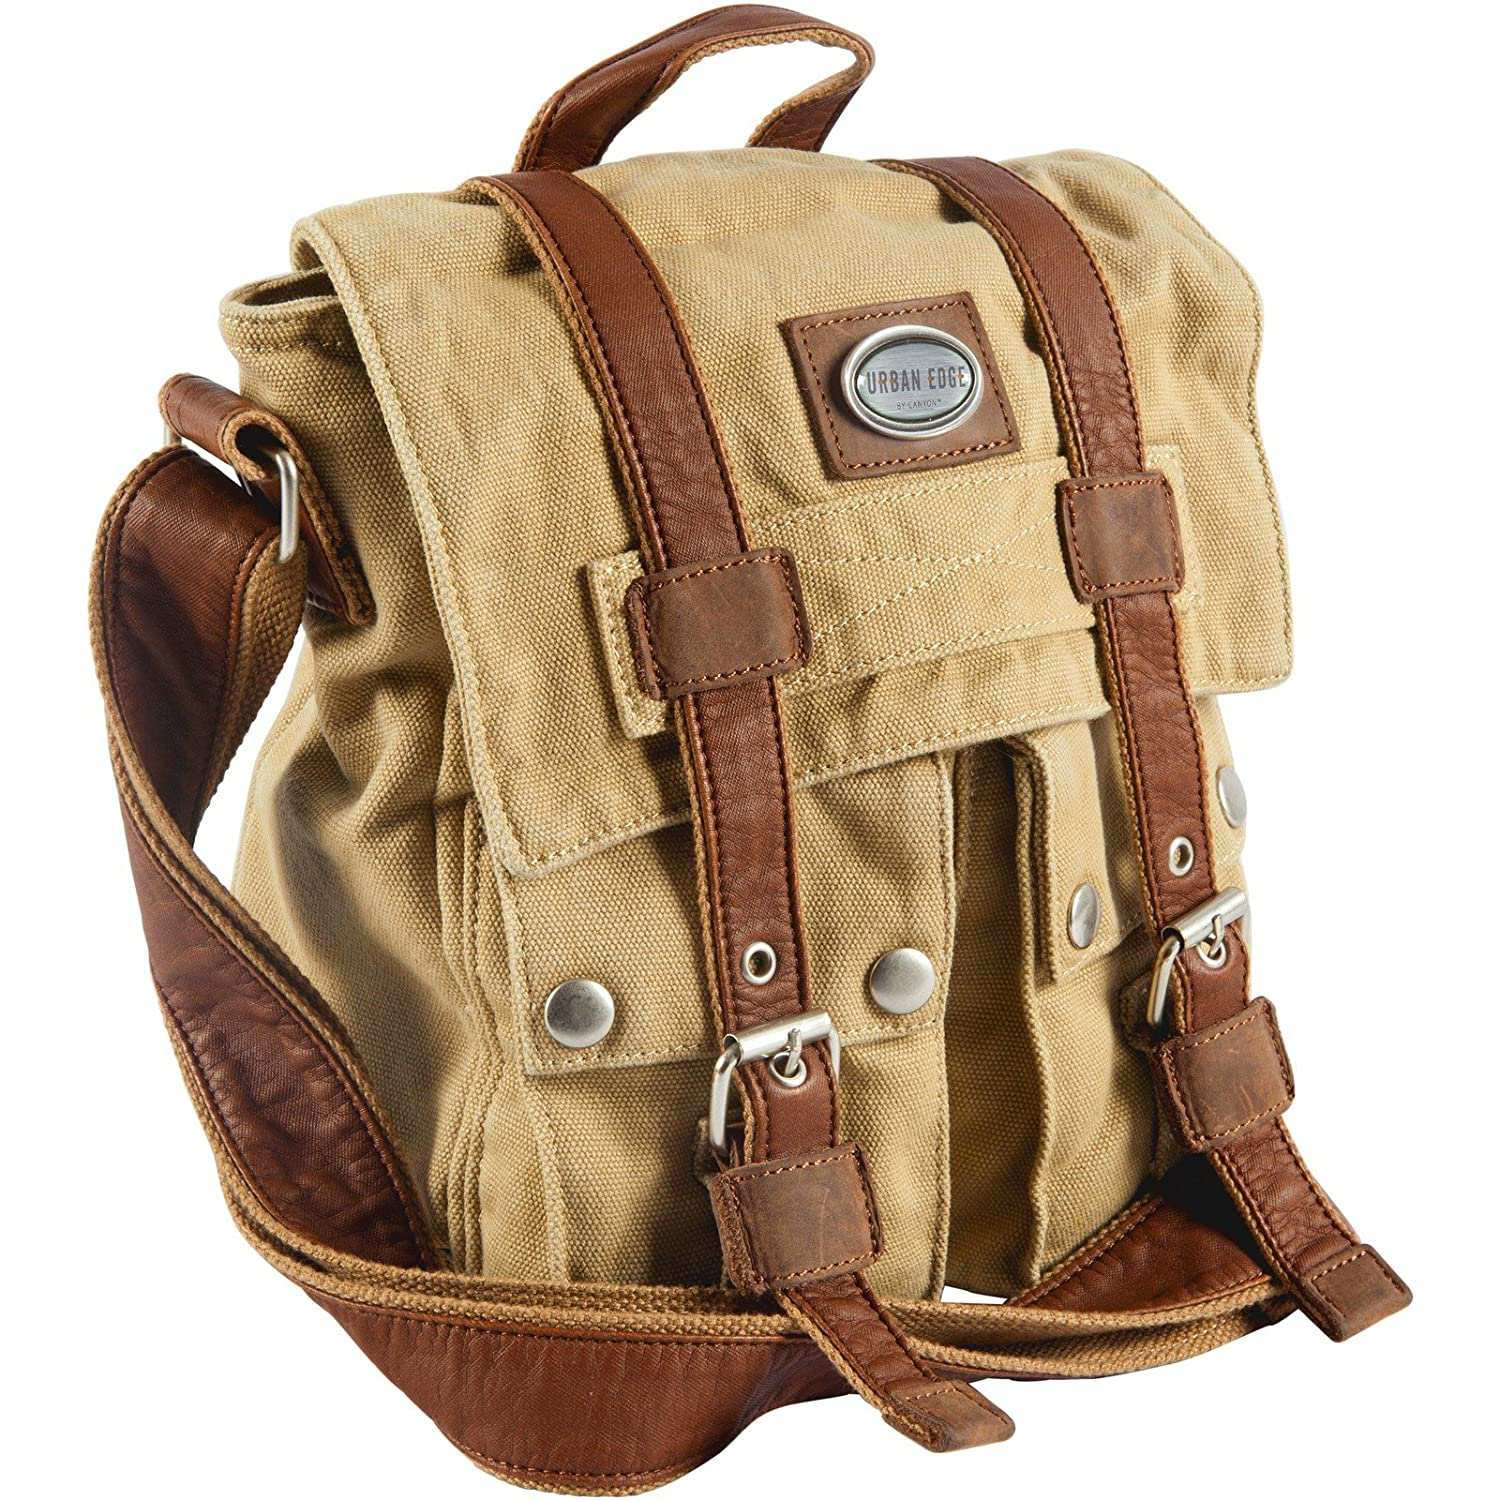 2329c8d7da Urban Outfitters Mini Classic Canvas Backpack- Fenix Toulouse Handball